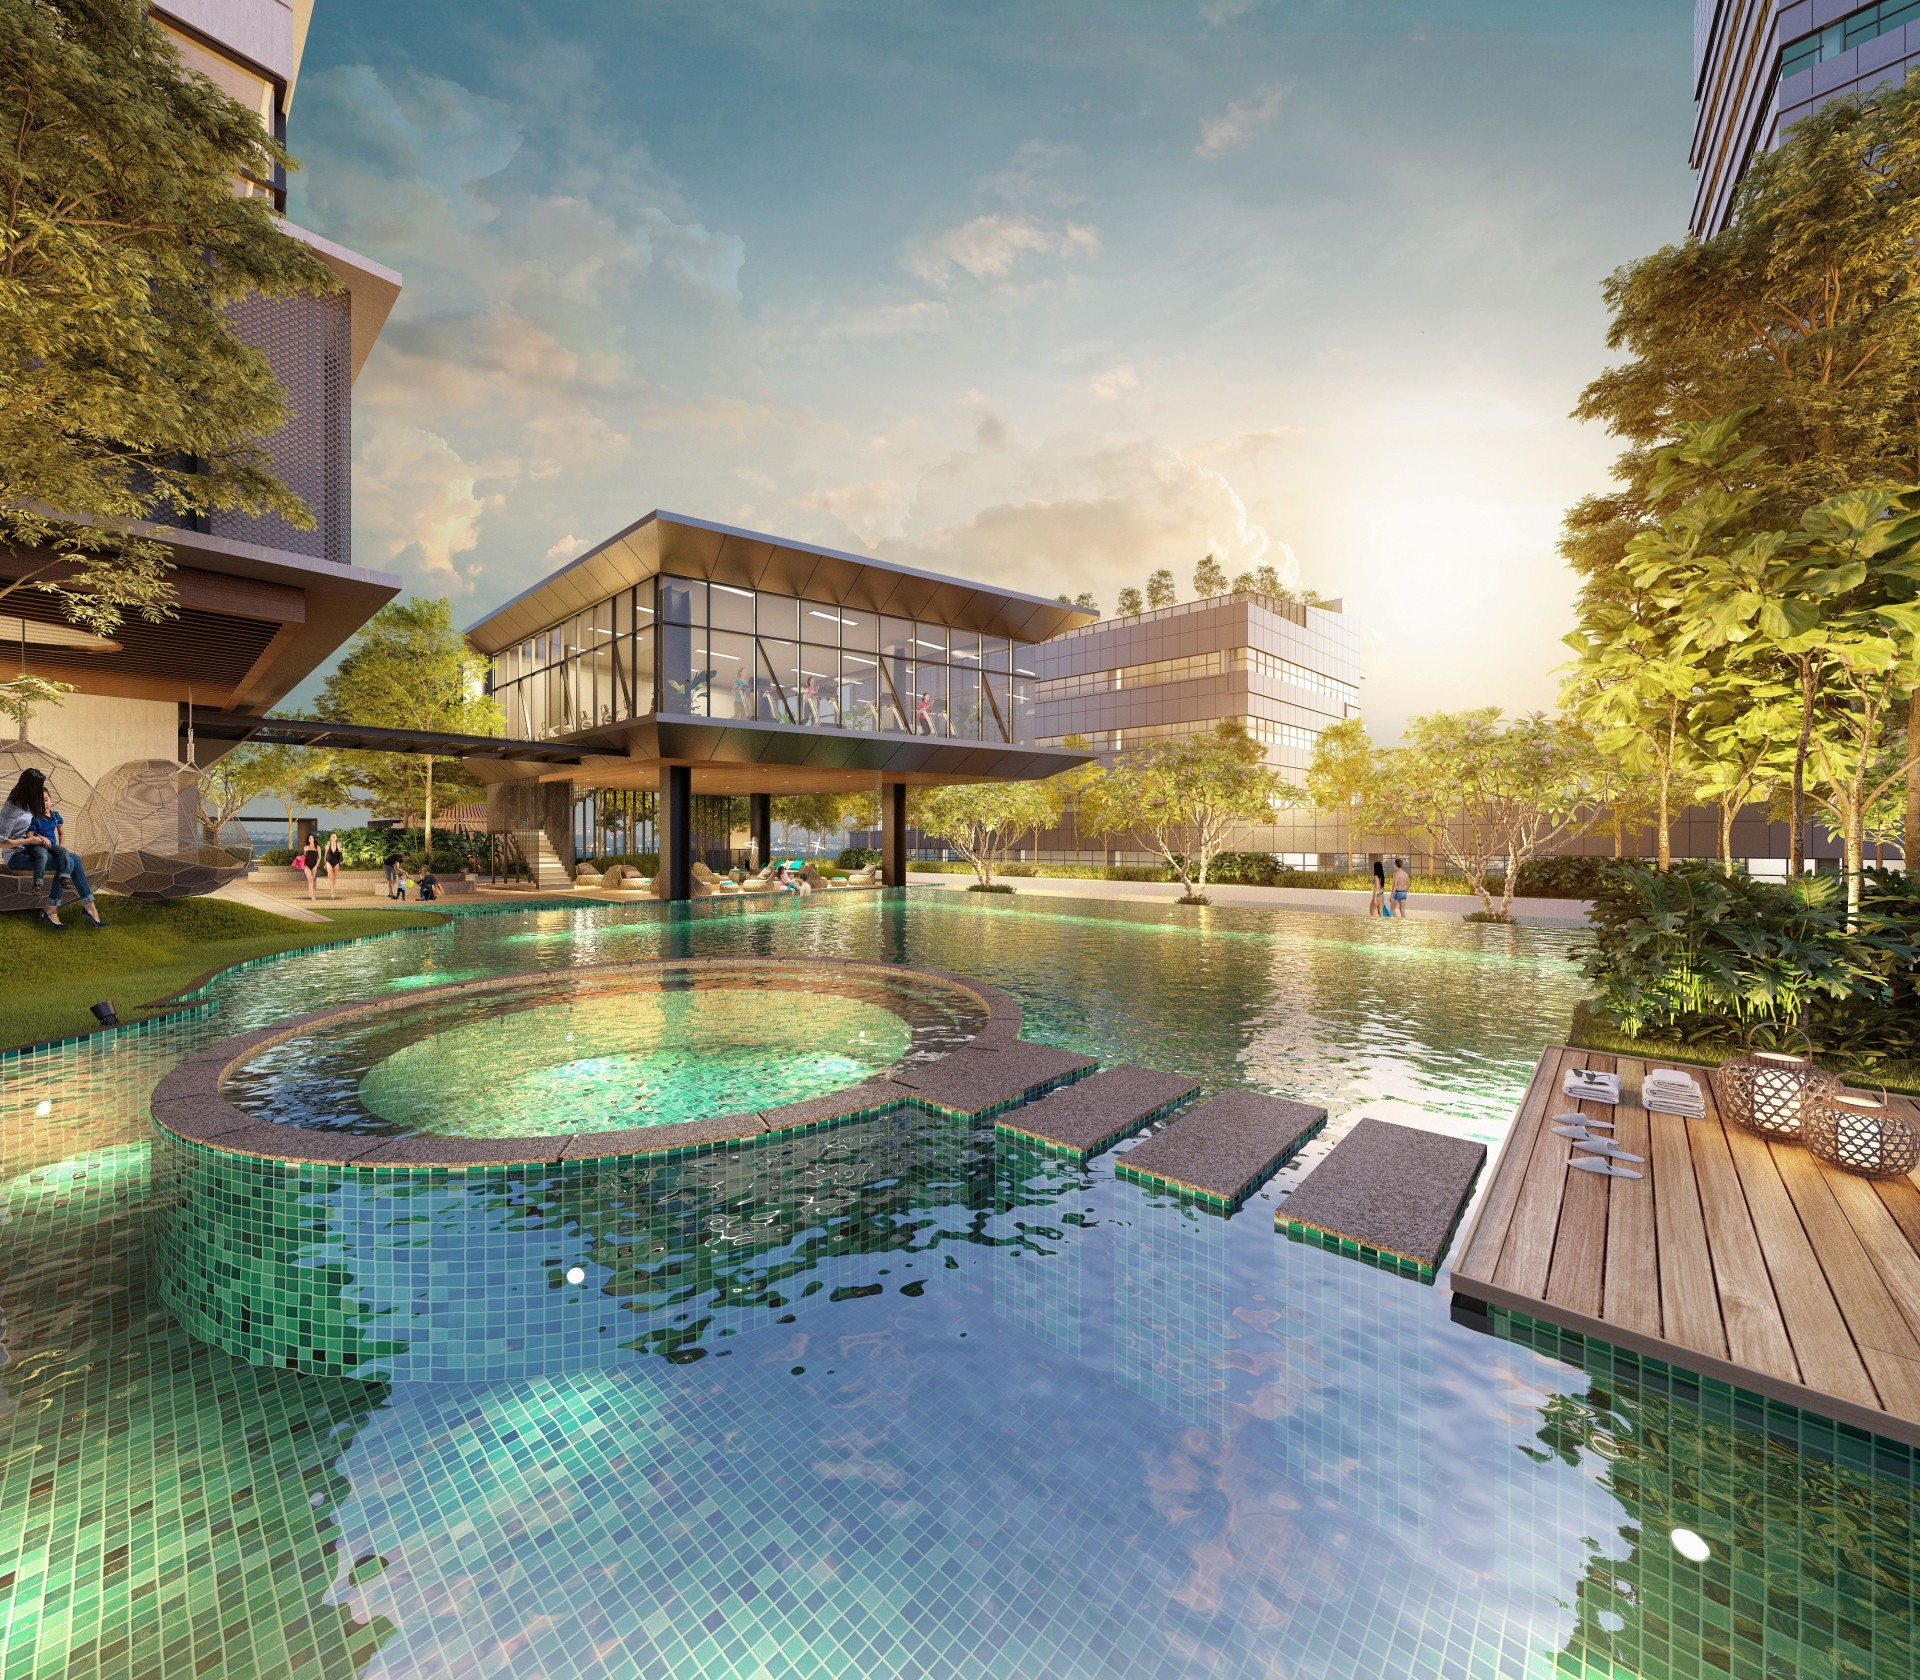 ATWATER at Section 13, Petaling Jaya, features senior living features in select units